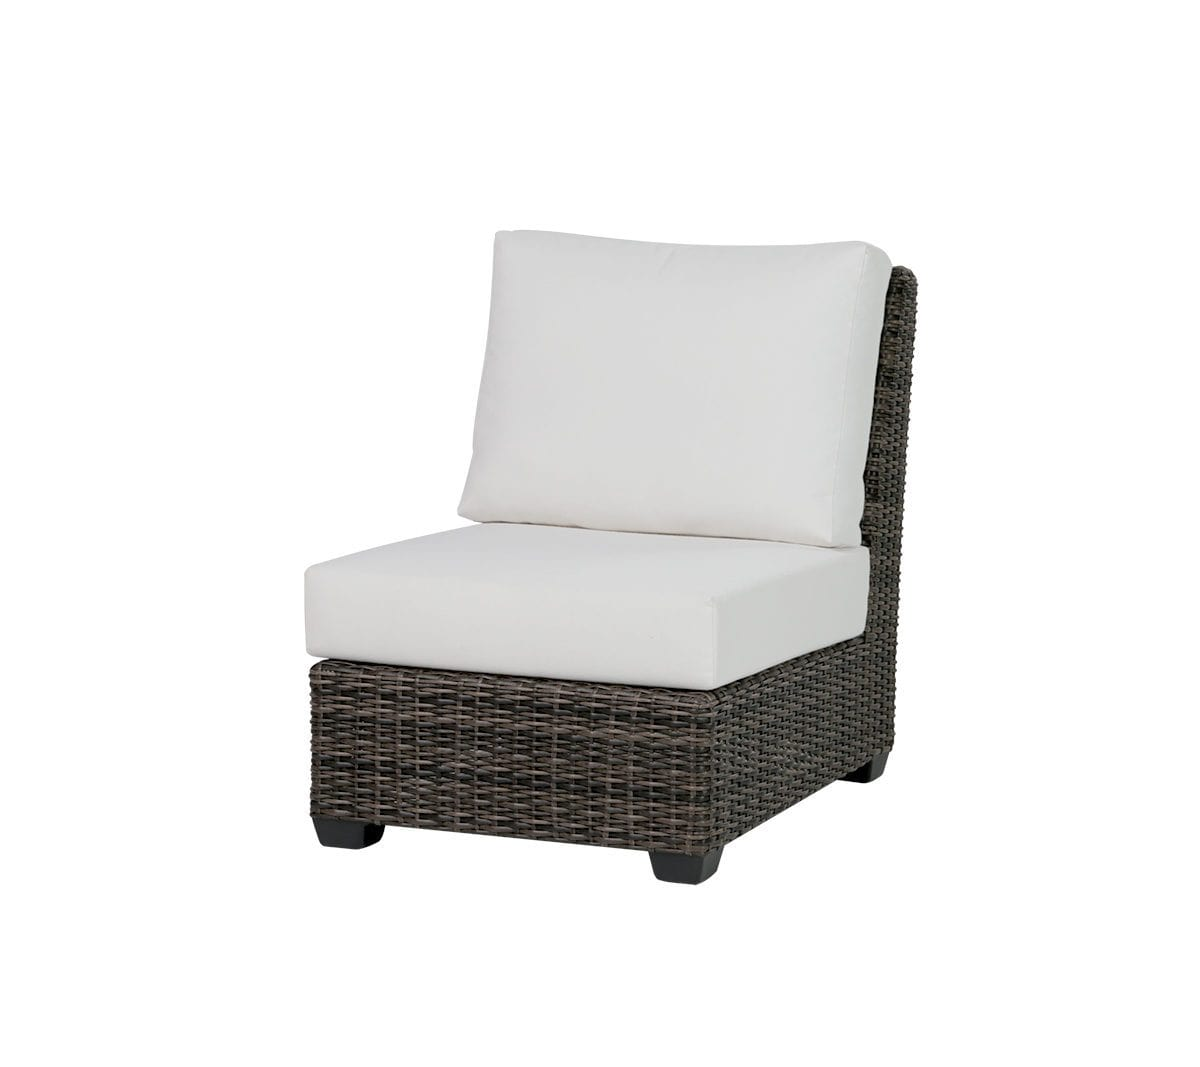 Ratana wicker Coral Gables Armless Chair